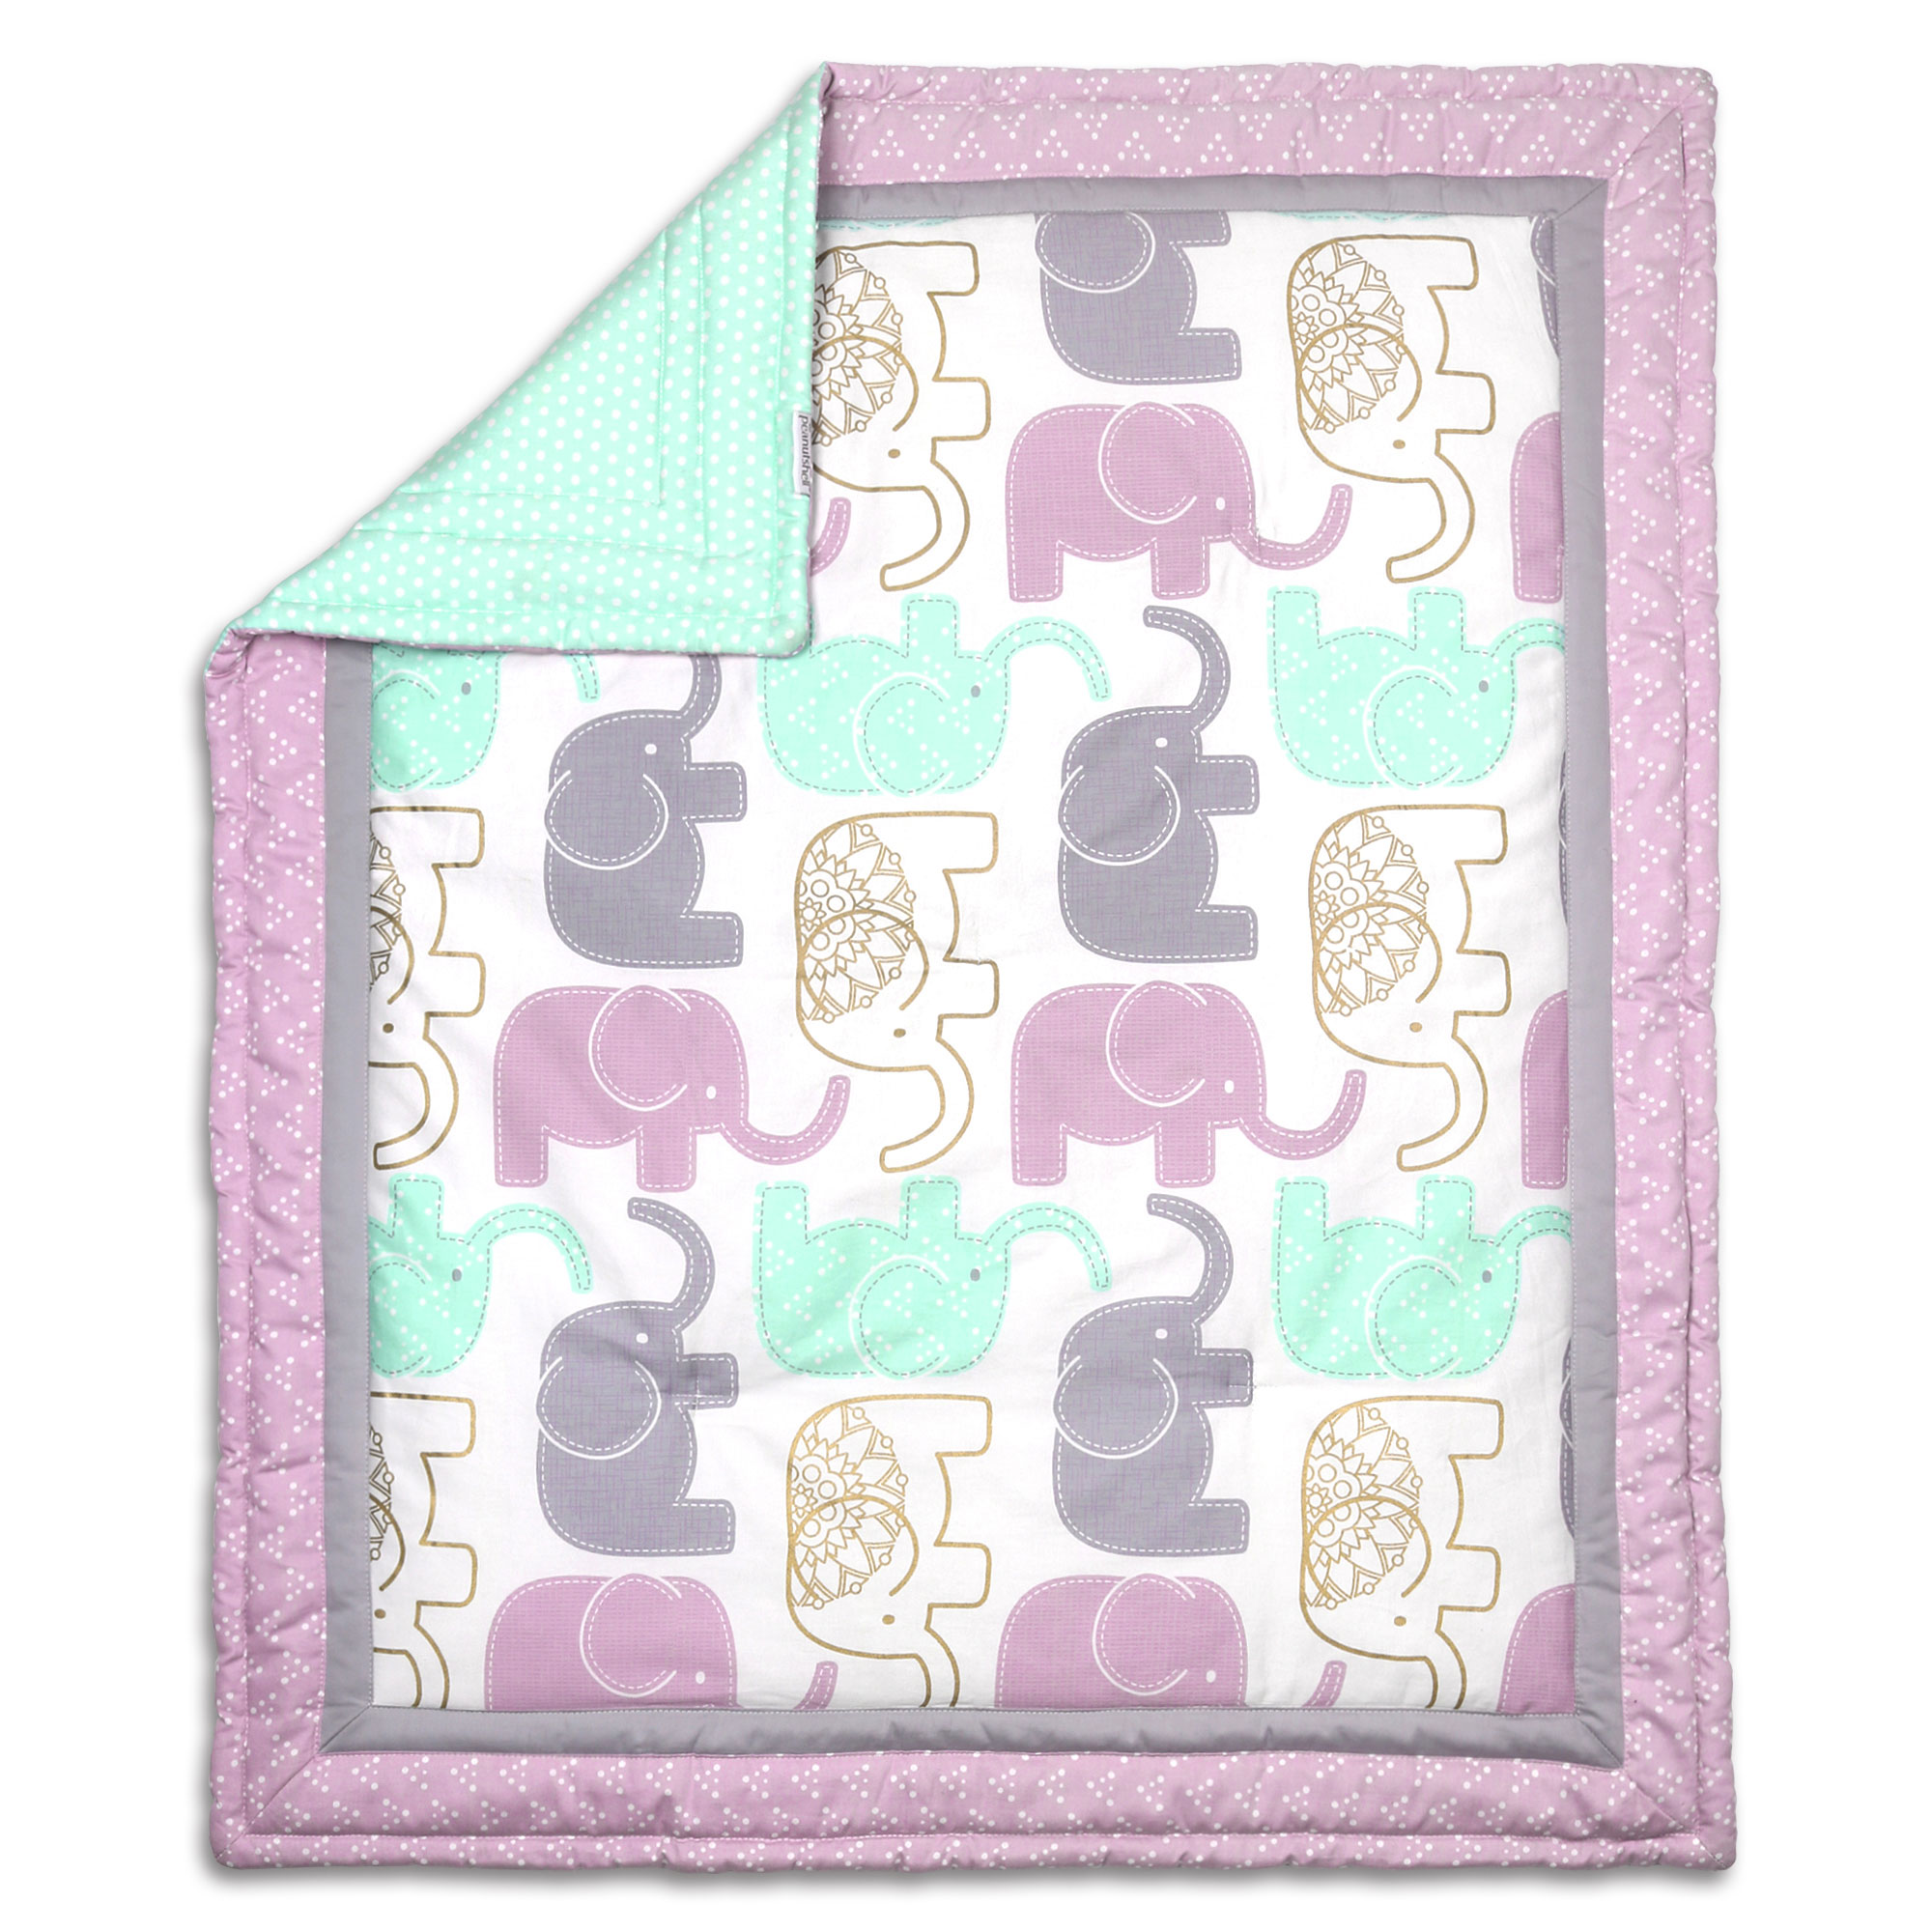 The Peanut Shell Baby Girl Crib Quilt - Little Peanut Lilac Purple and Gold Elephants - 100% Cotton Sateen Fabrics; 44 by 37 Inches